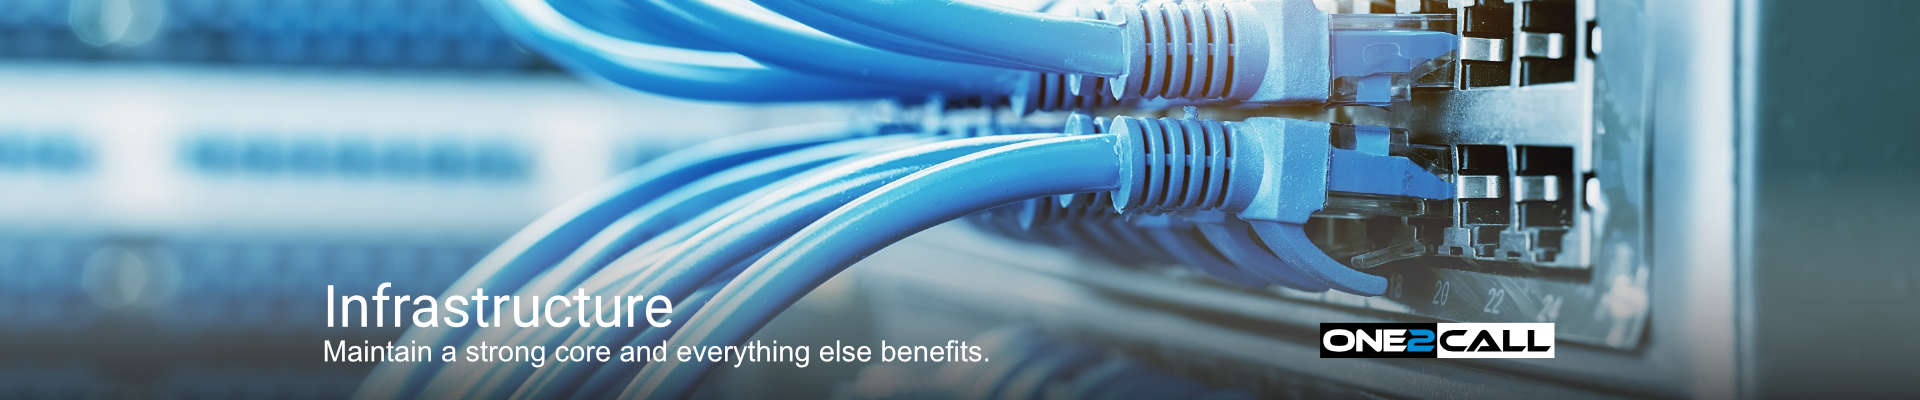 Infrastructure - Maintain a strong core and everything else benefits.